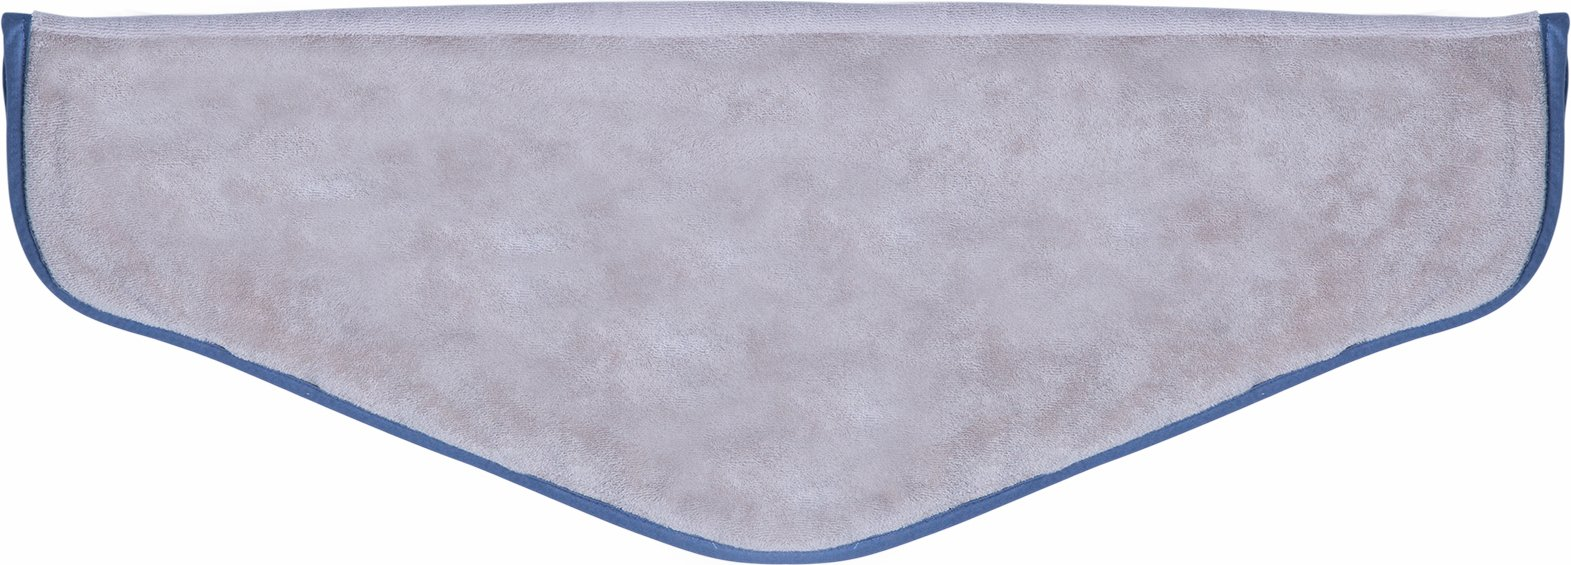 Chattanooga Hydrocollator Terry Cloth Protective Cover: Neck Contour Sling (19'' W x 27'' L)